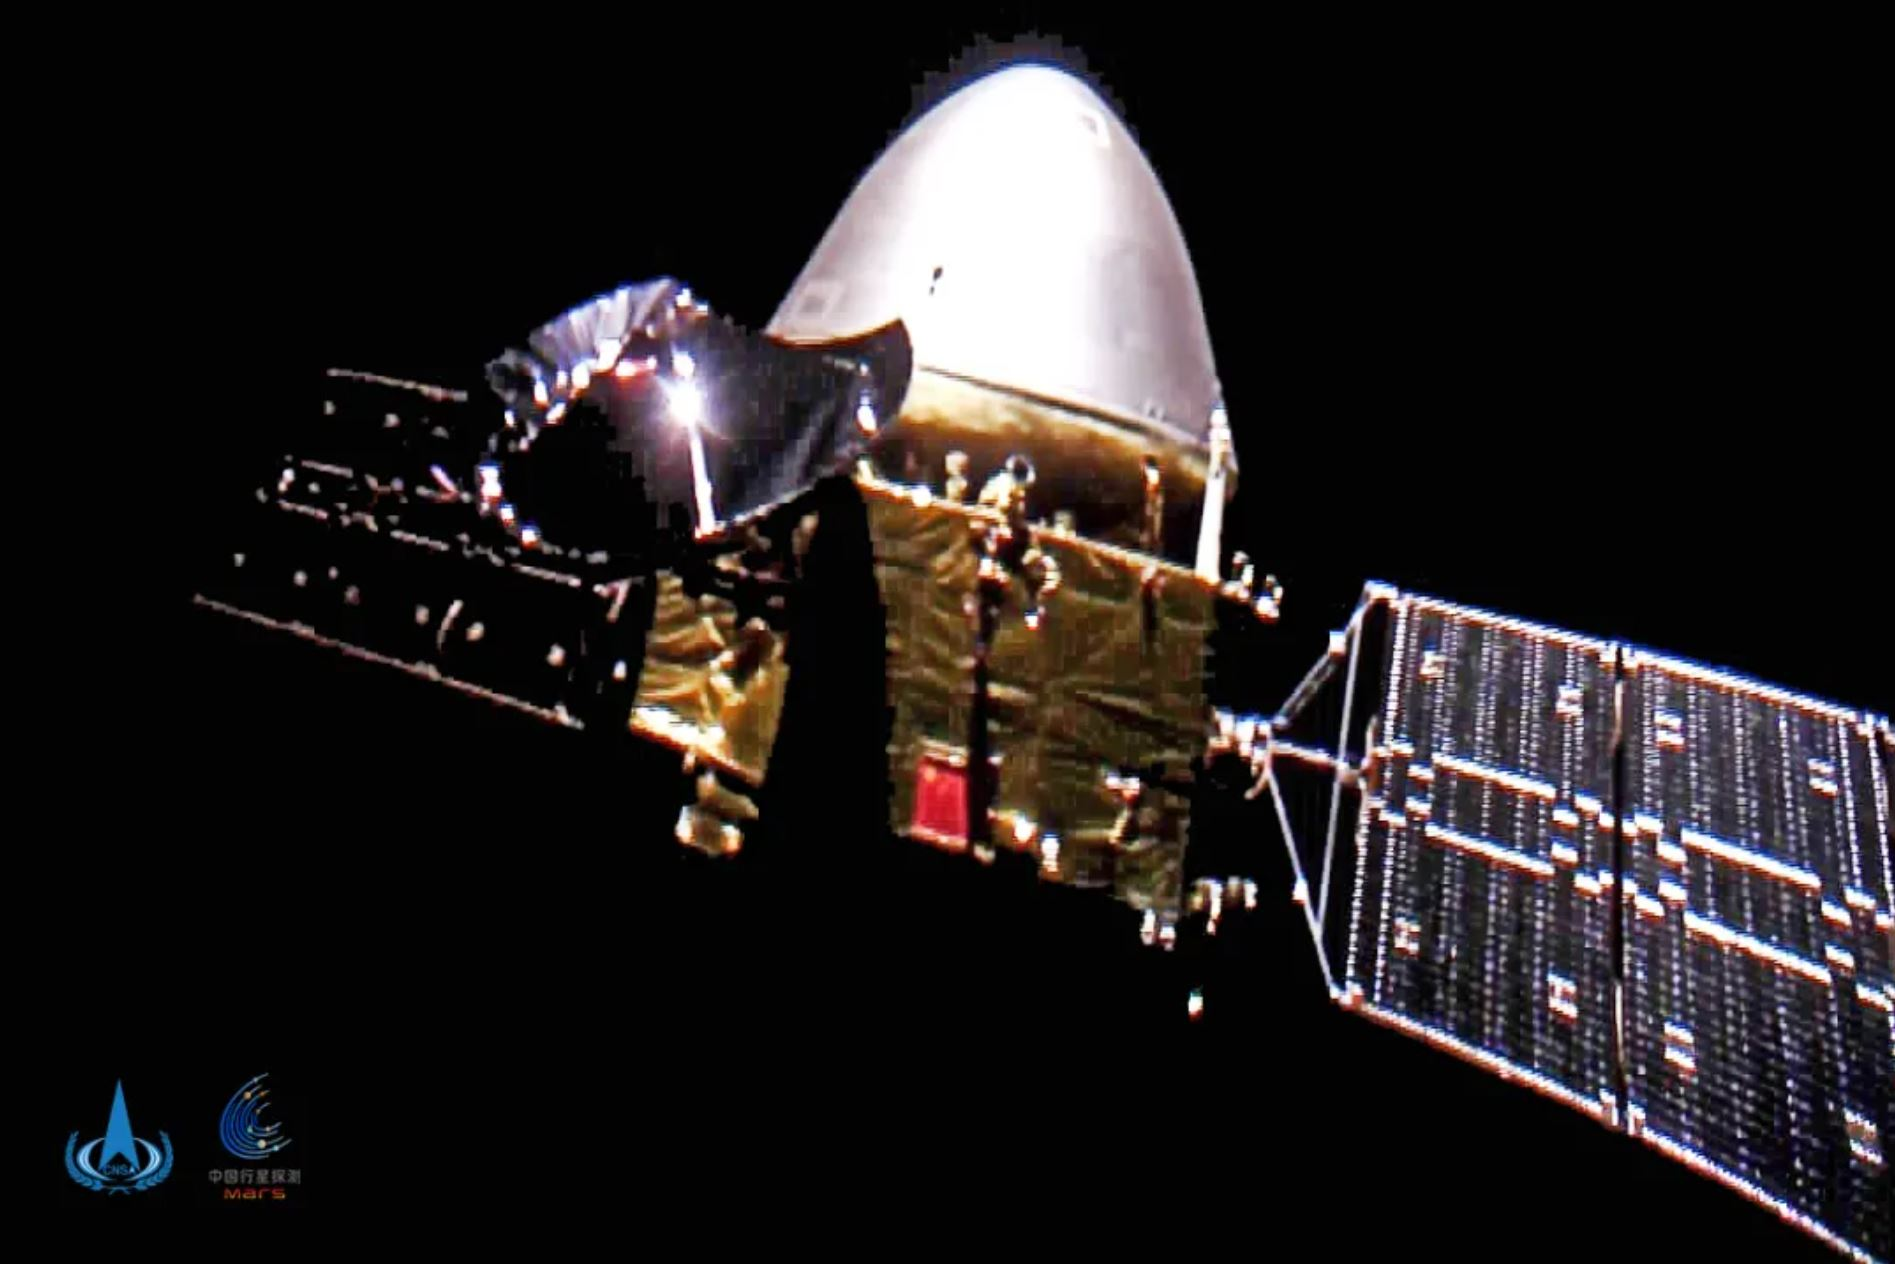 Tianwen-1 reached the Red Planet on Wednesday